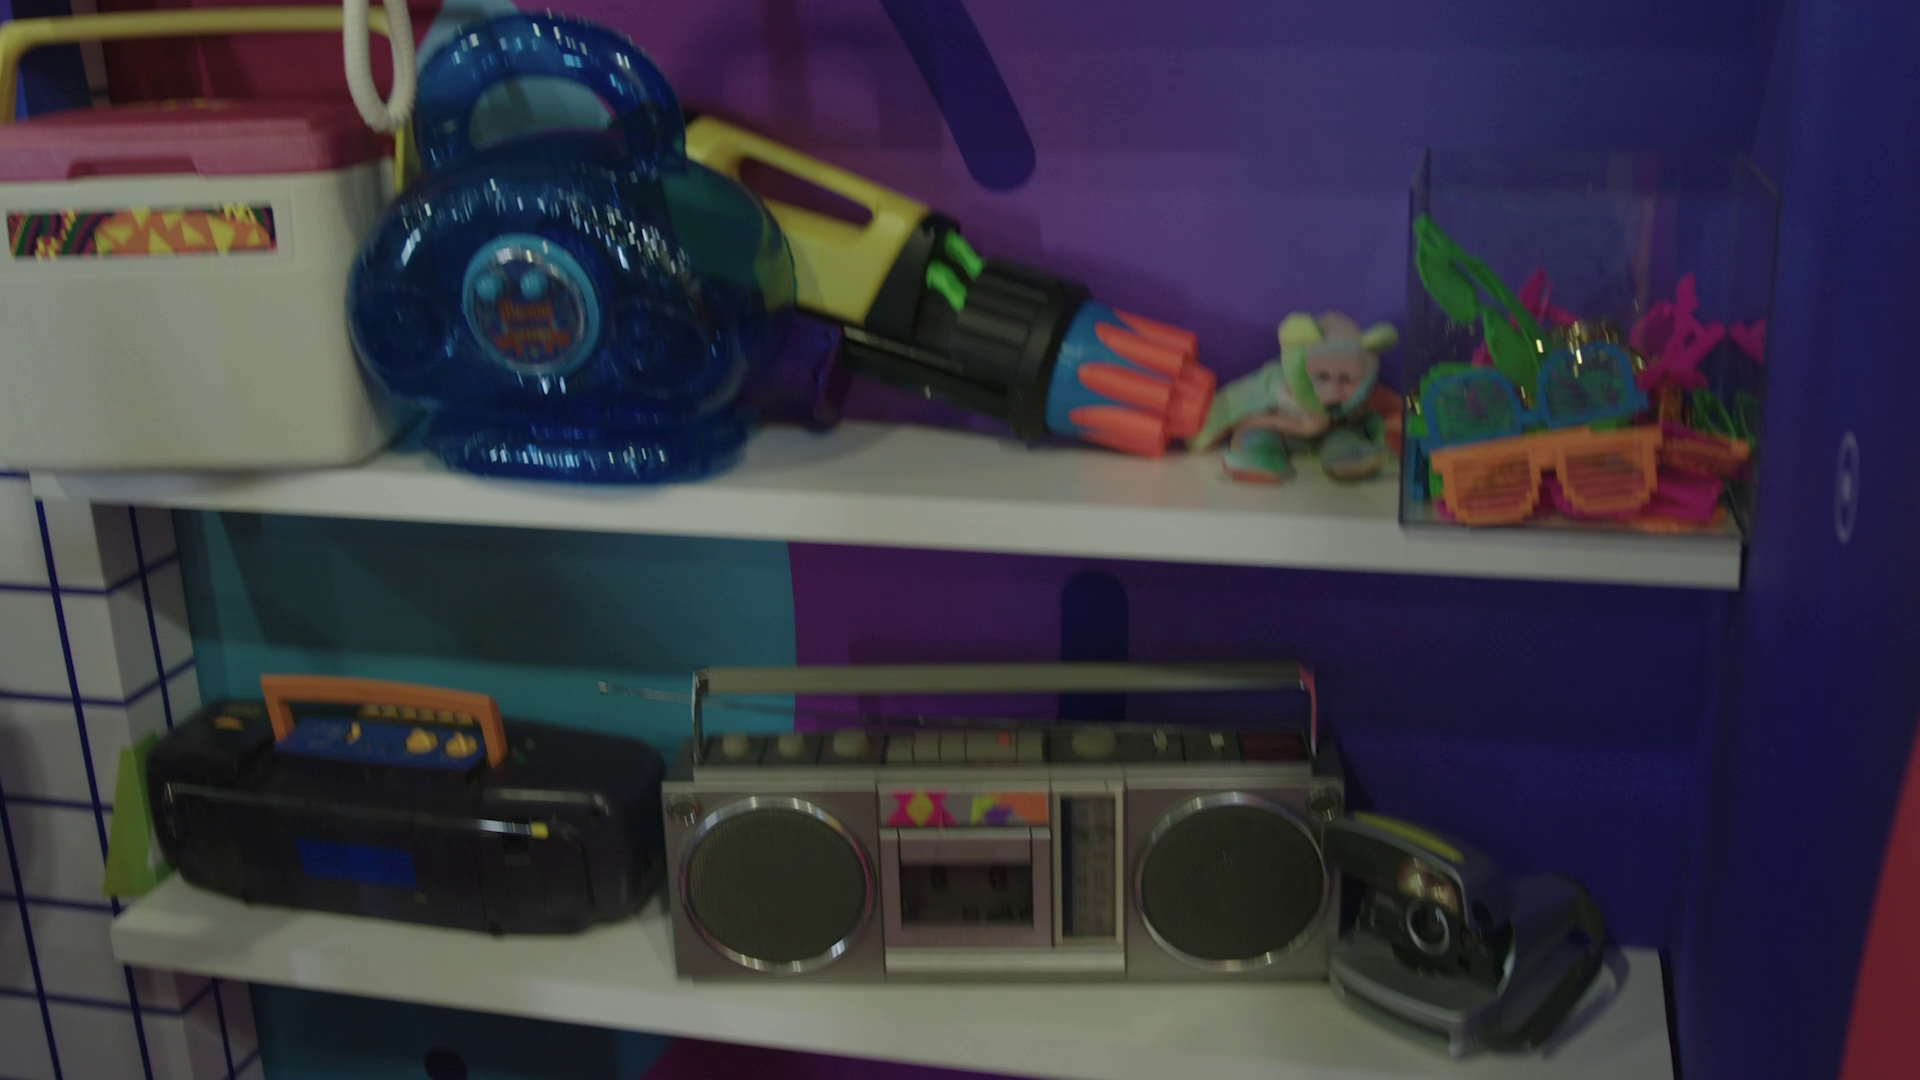 vlcsnap-2019The Adobe Summit in Las Vegas features a 1994 escape the room-style event where you will explore life in a 90s corporate office, video rental store, and living room (Photos Courtesy Hotwire Global)-03-27-12h43m22s782.png